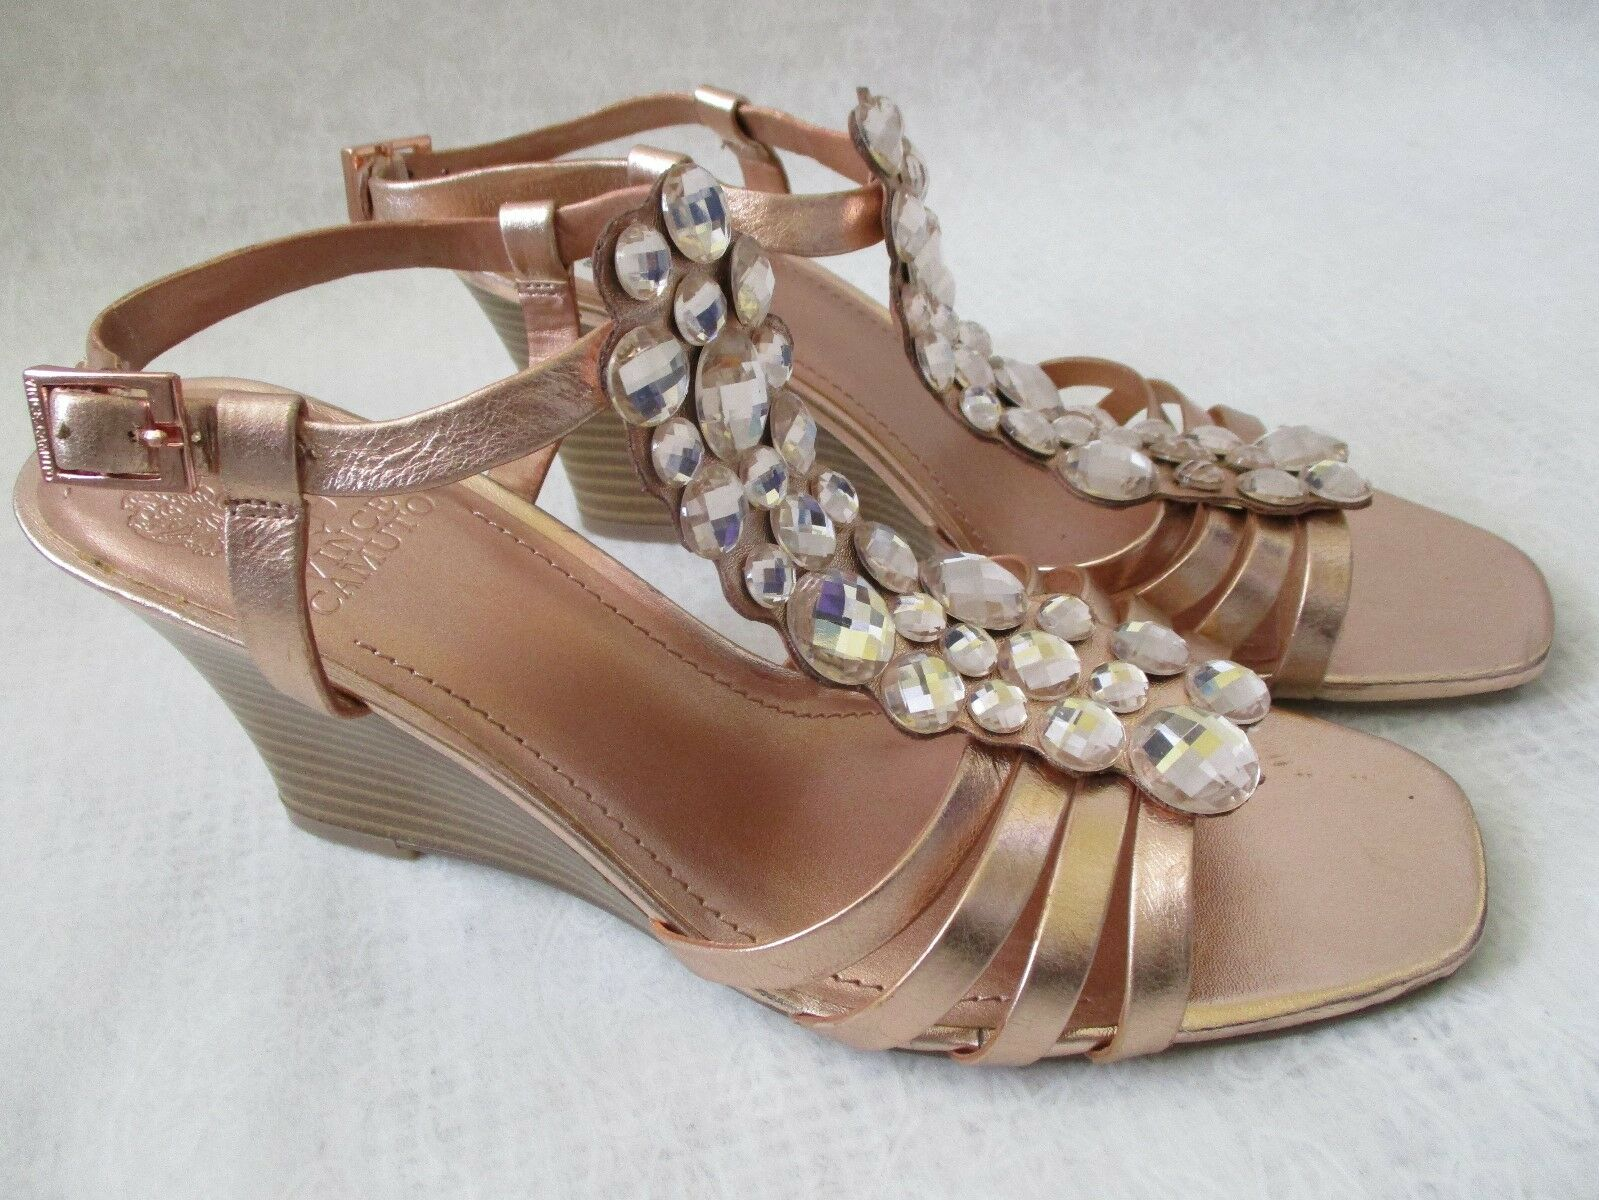 79 VINCE CAMUTO LEATHER ROSE GOLD JEWELED WEDGE SCARPE SIZE 9 1/2 M - NEW